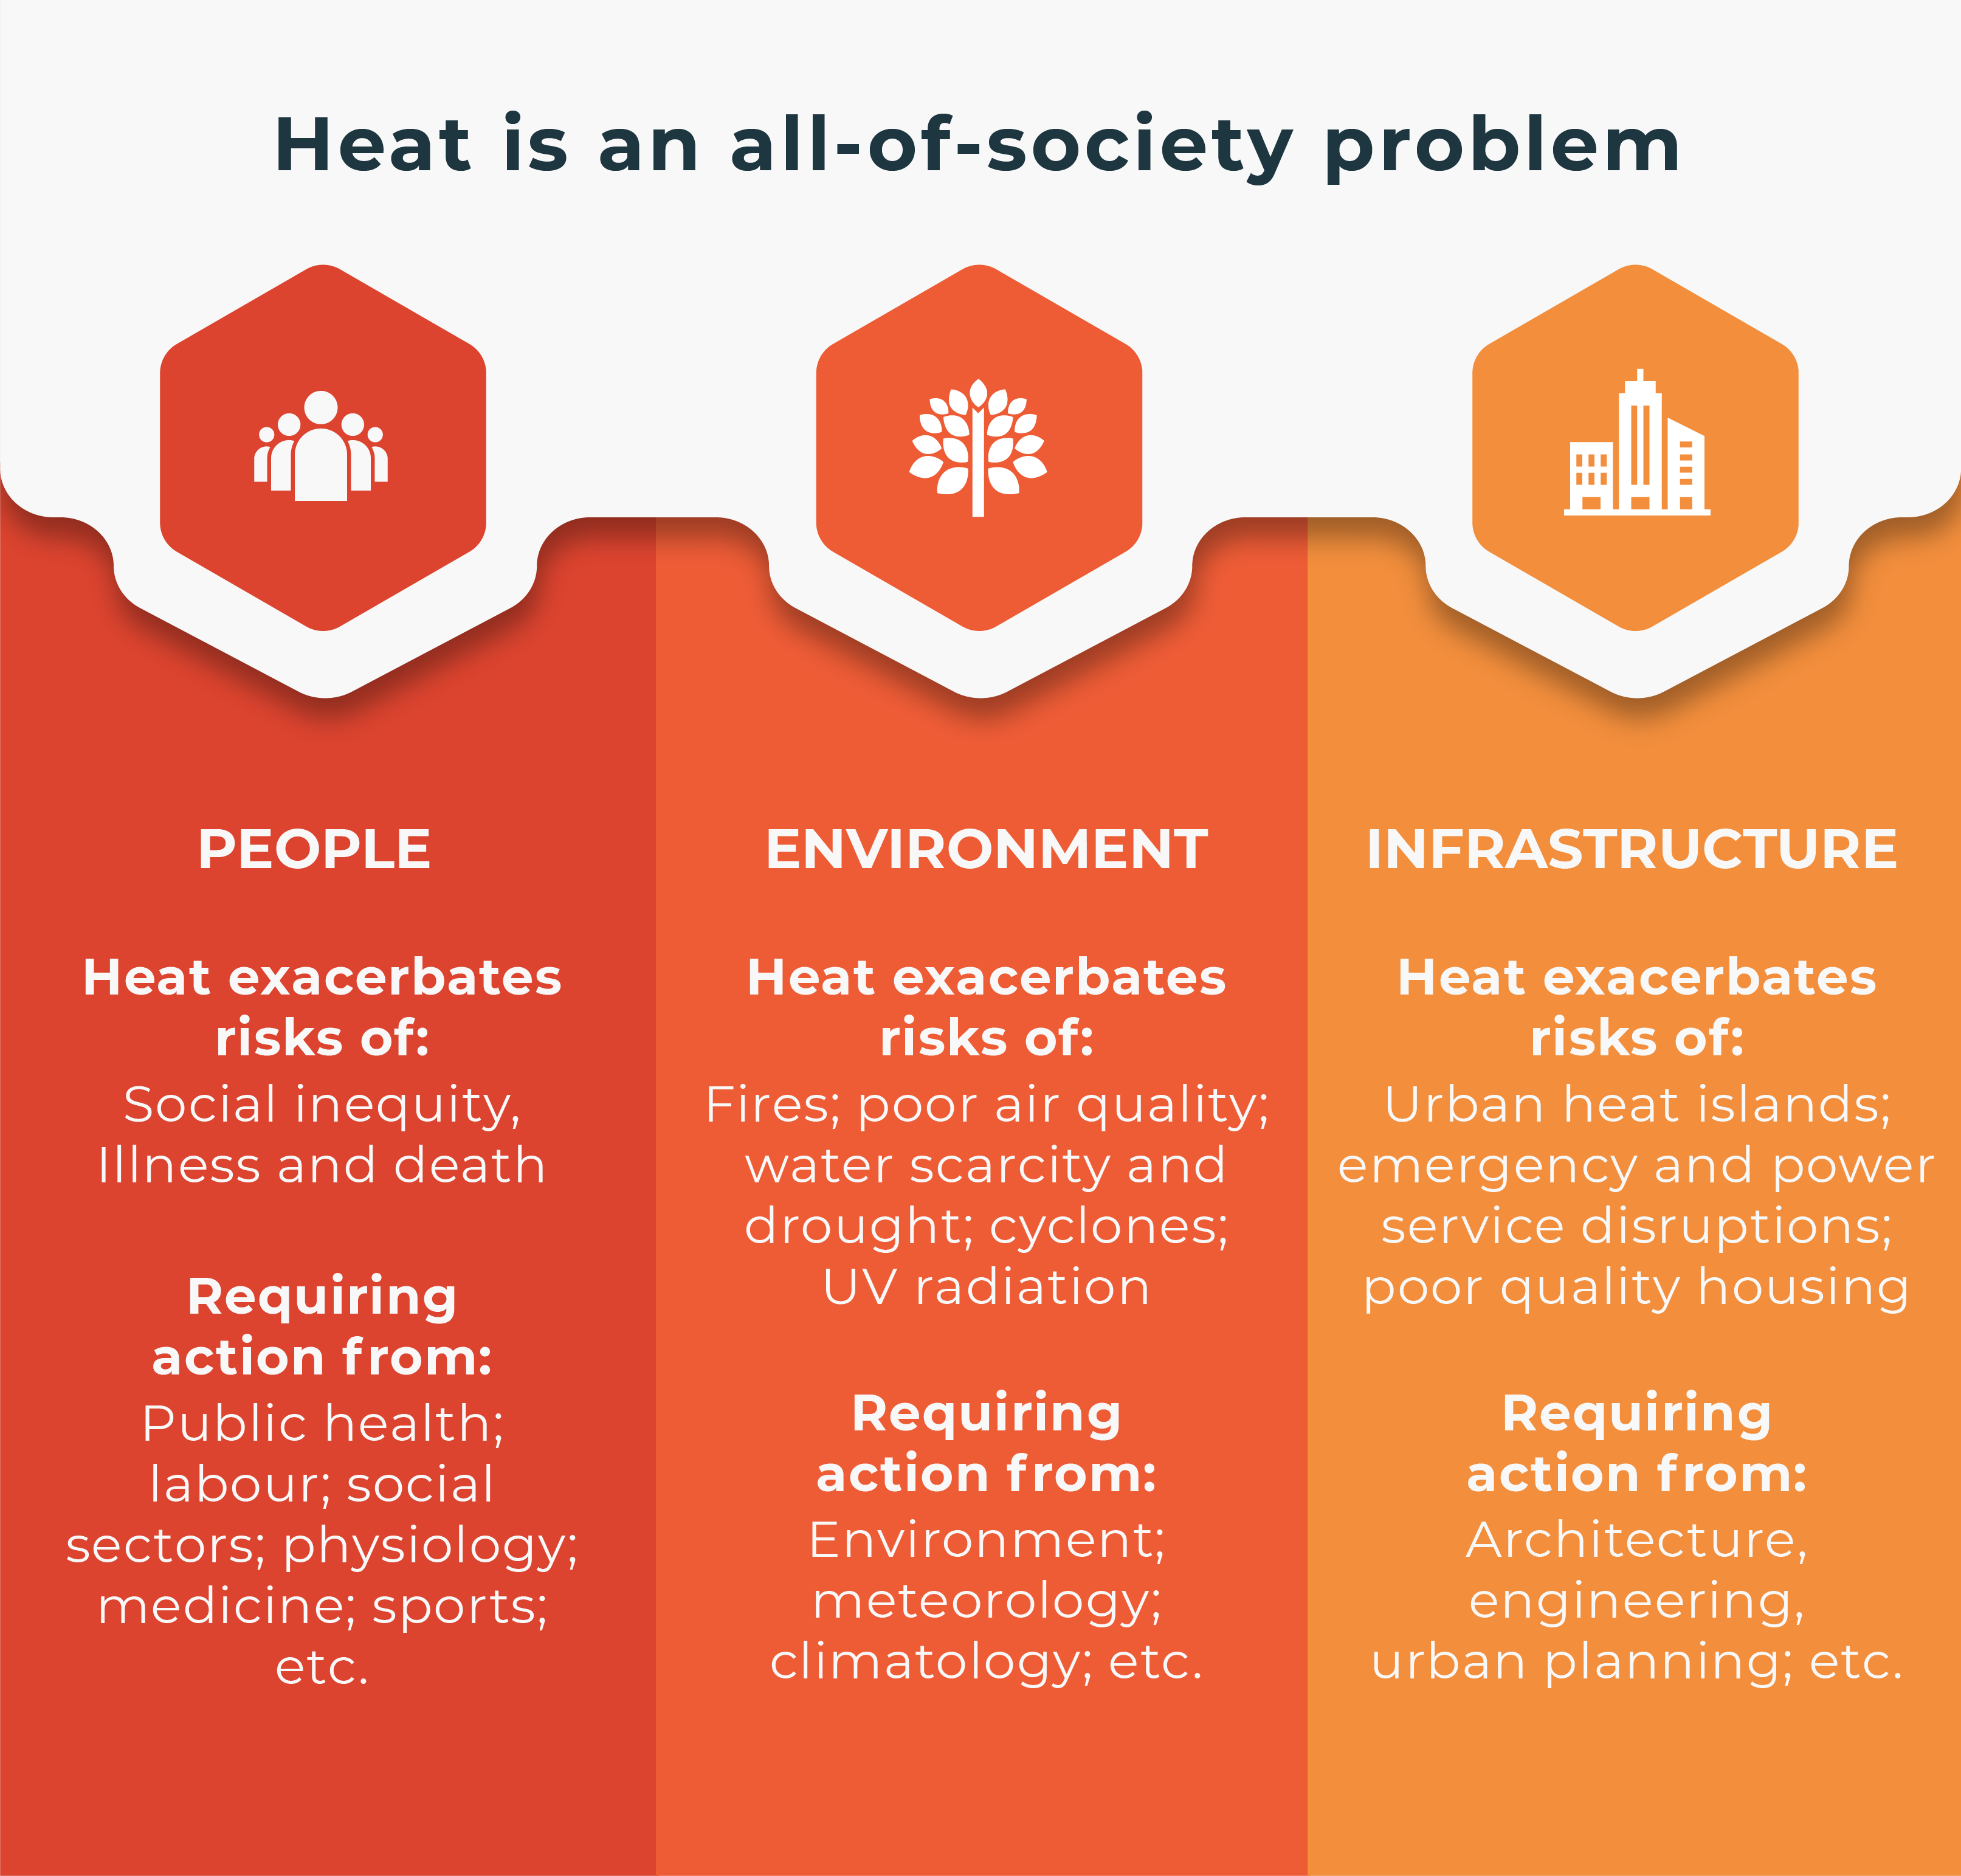 https://ghhin.org/wp-content/uploads/society-heat-03-1.png